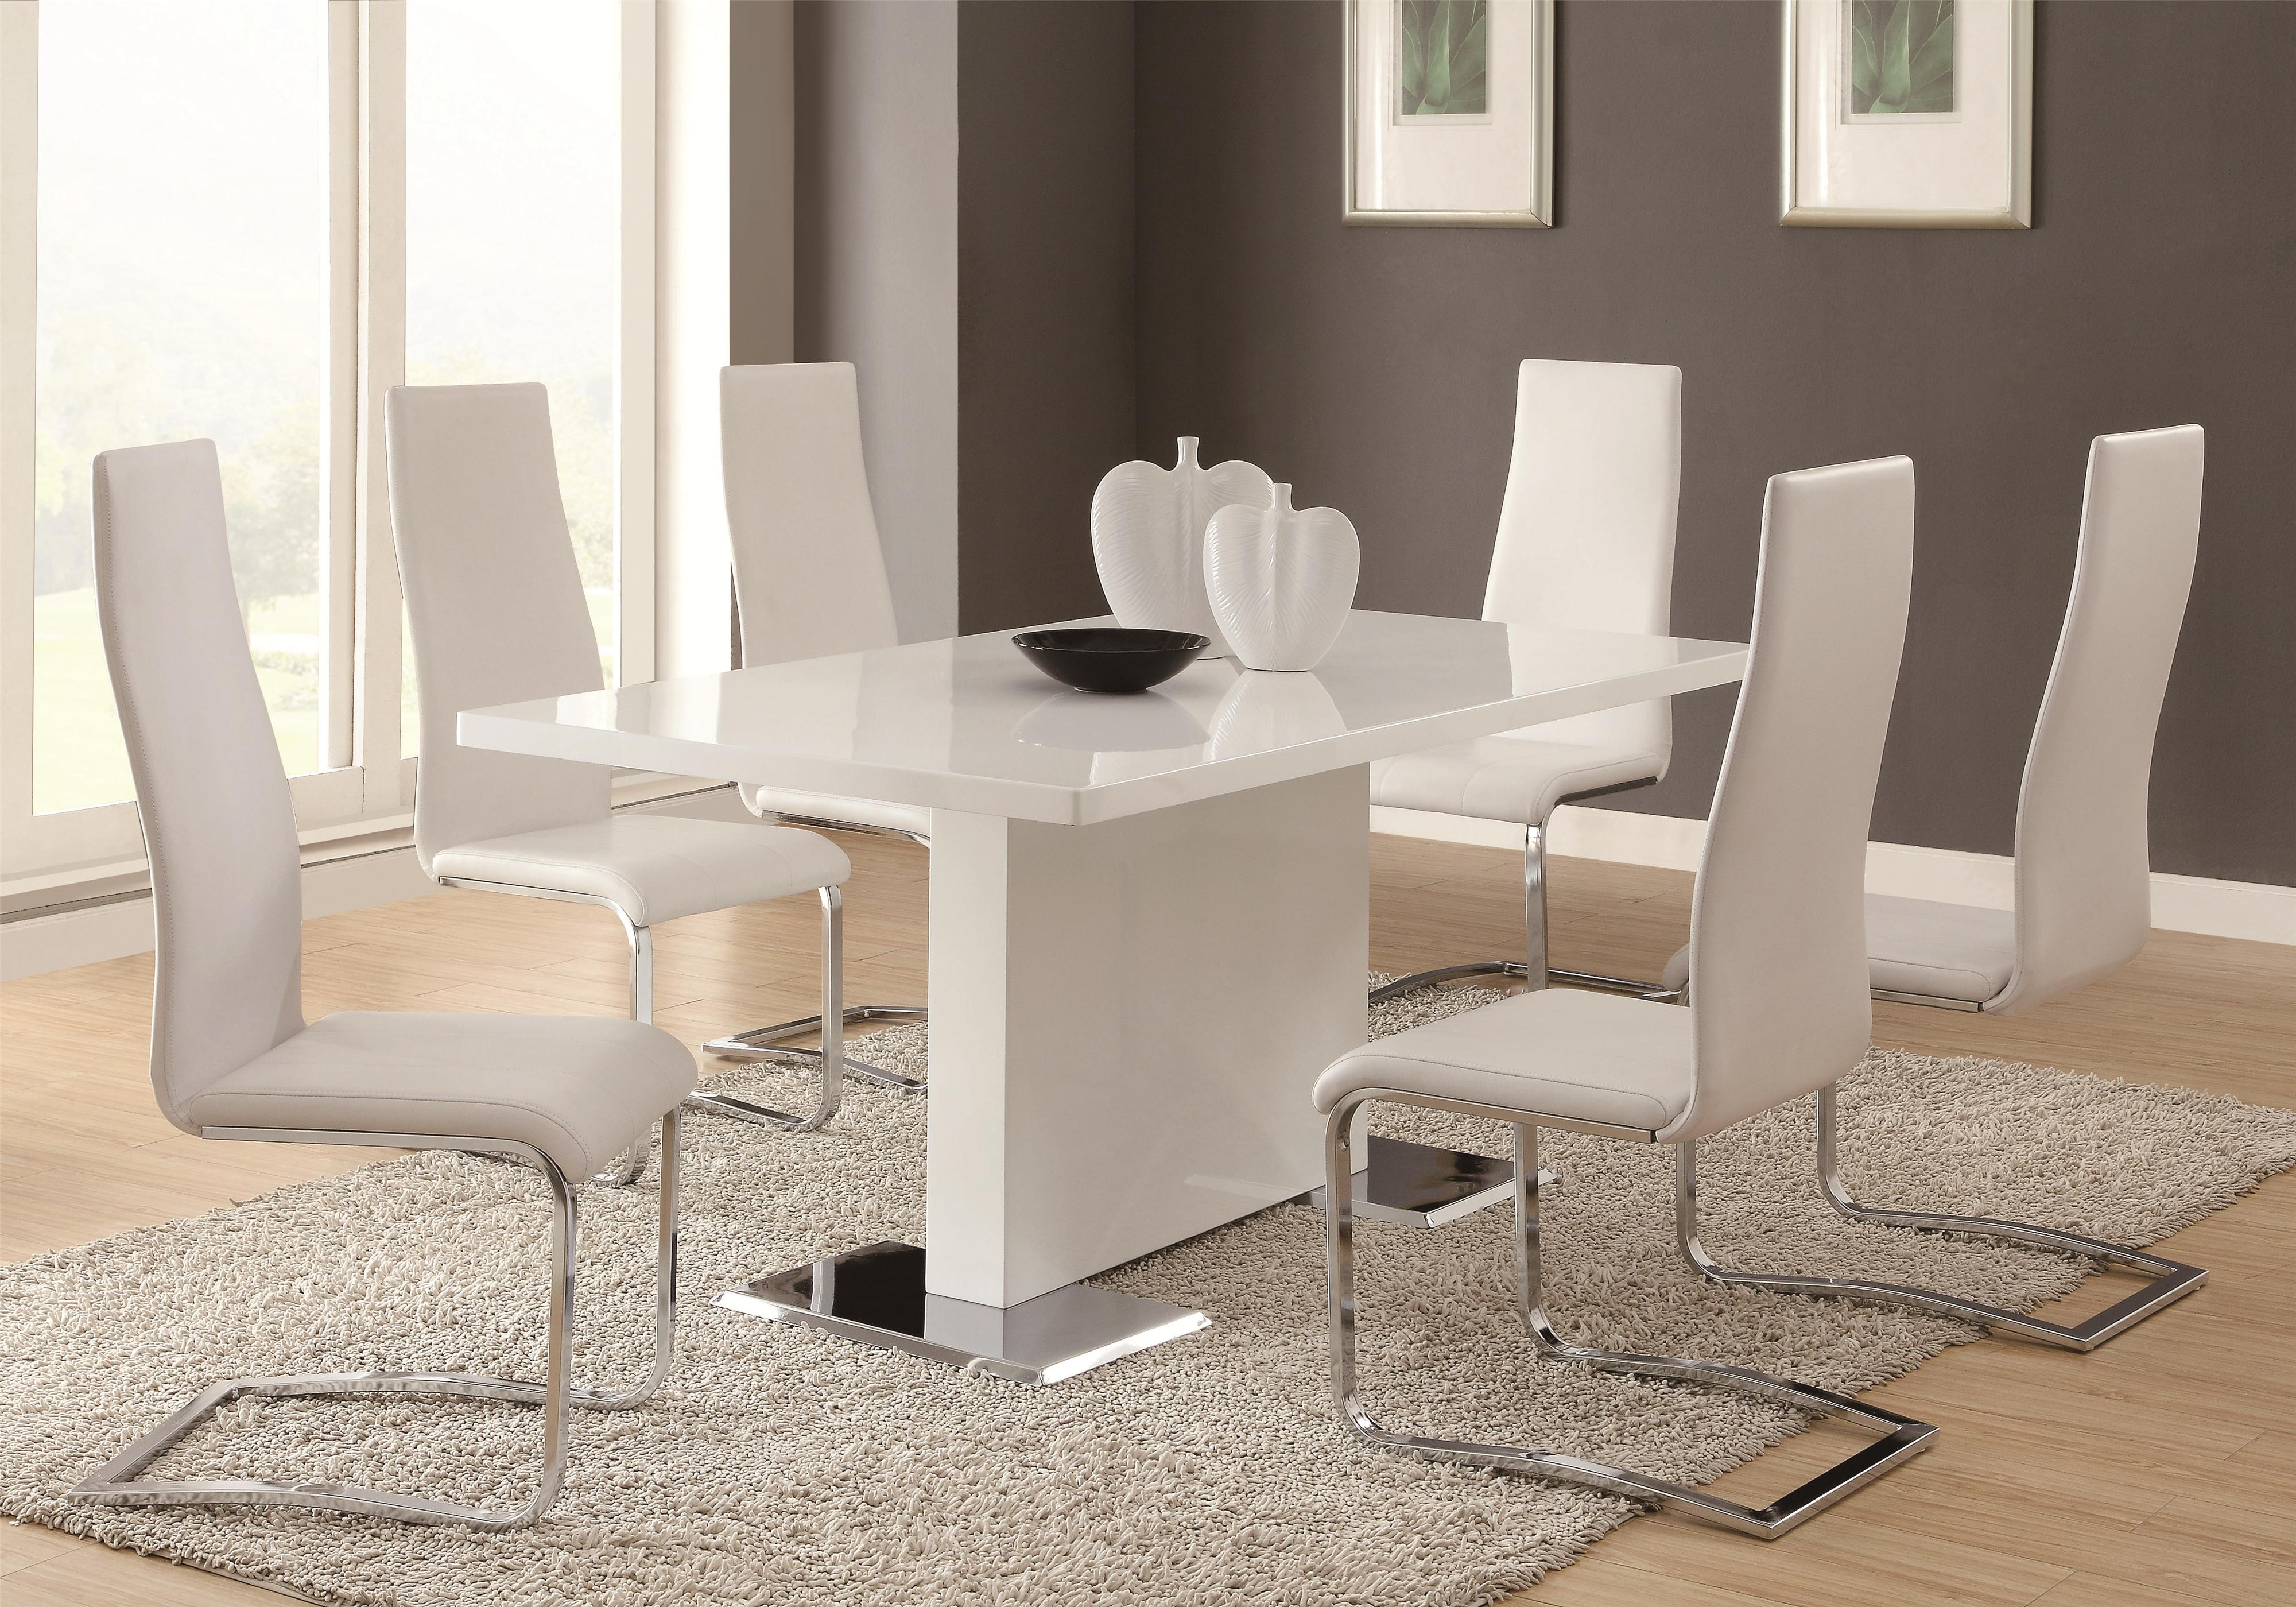 Coaster Modern Dining 7 Piece White Table   White Upholstered Chairs     Coaster Modern Dining 7 Piece Table   Chair Set   Item Number   102310 6x100515WHT